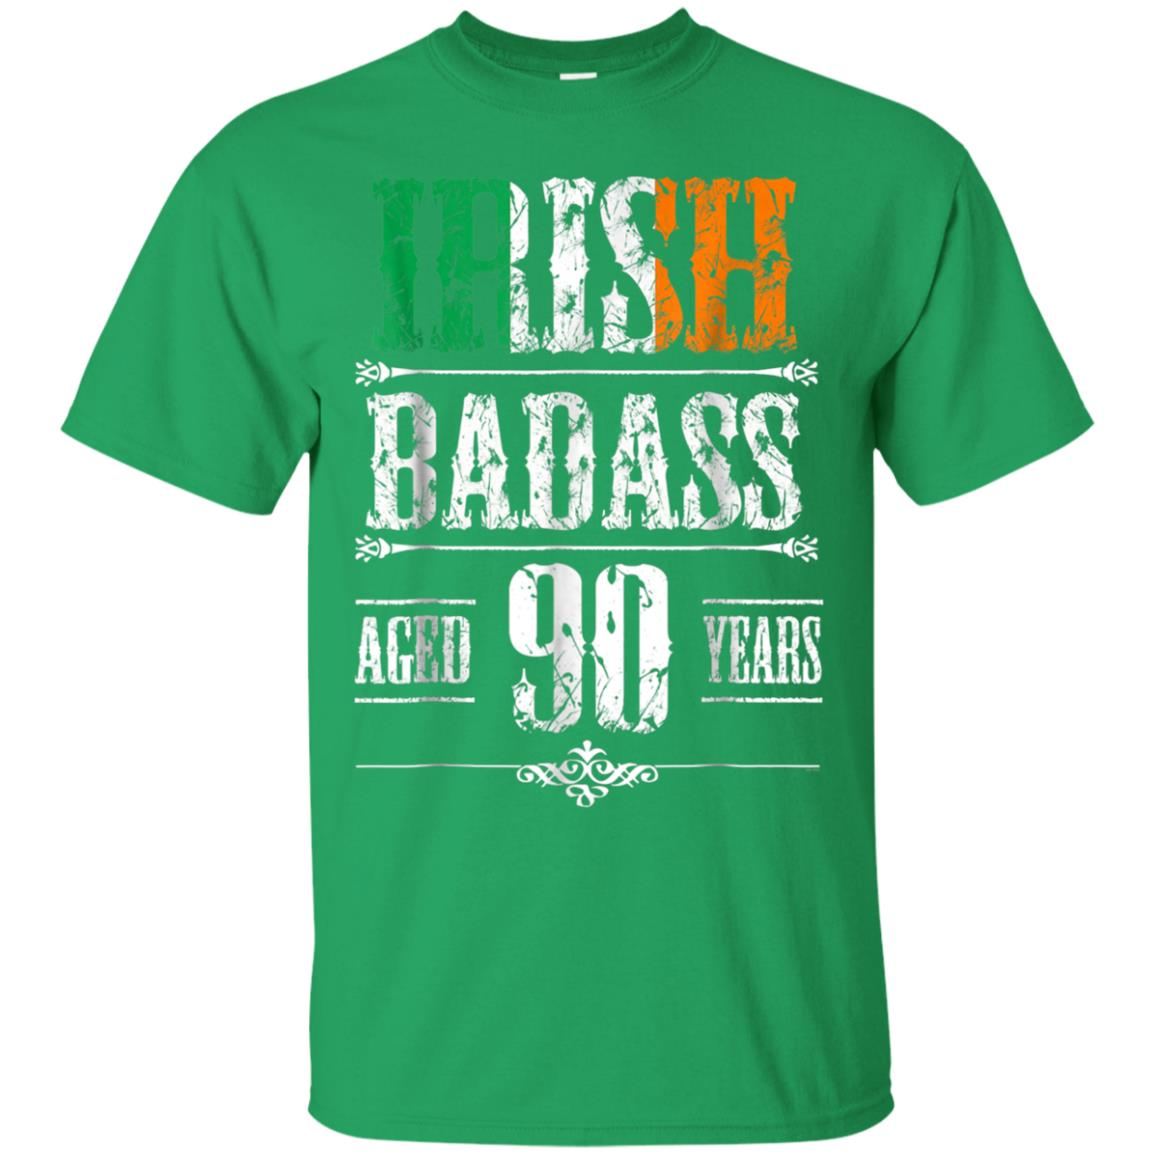 Awesome 90th Irish Birthday Gifts T Shirt Present For 90 Year Old